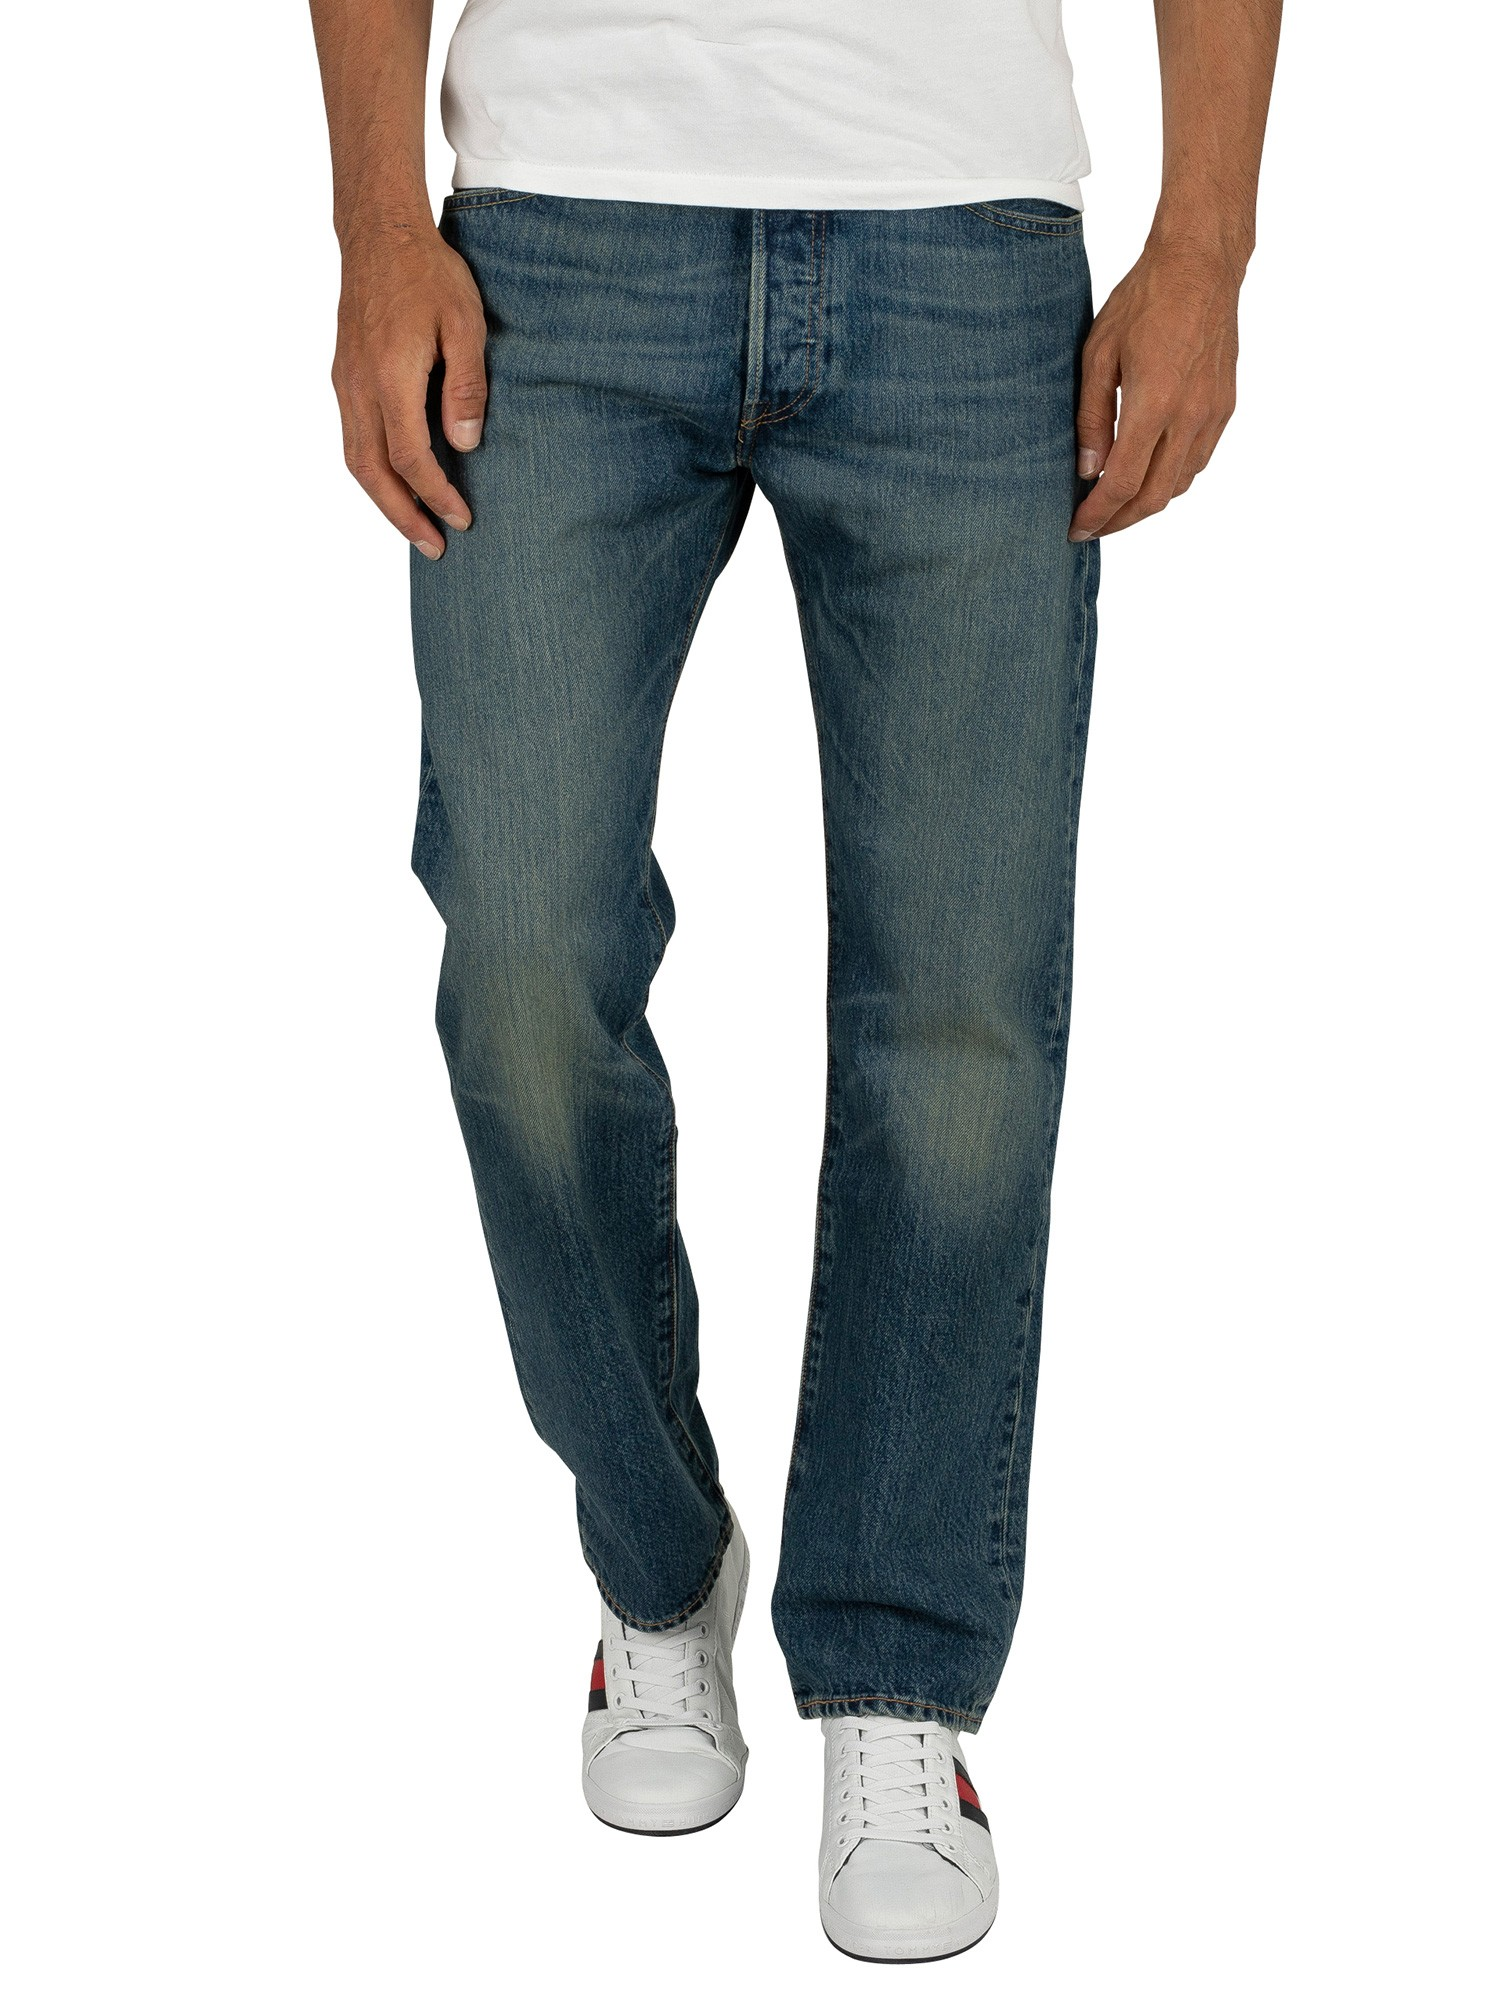 Levi's Men's 501 Regular Fit Jeans, Blue